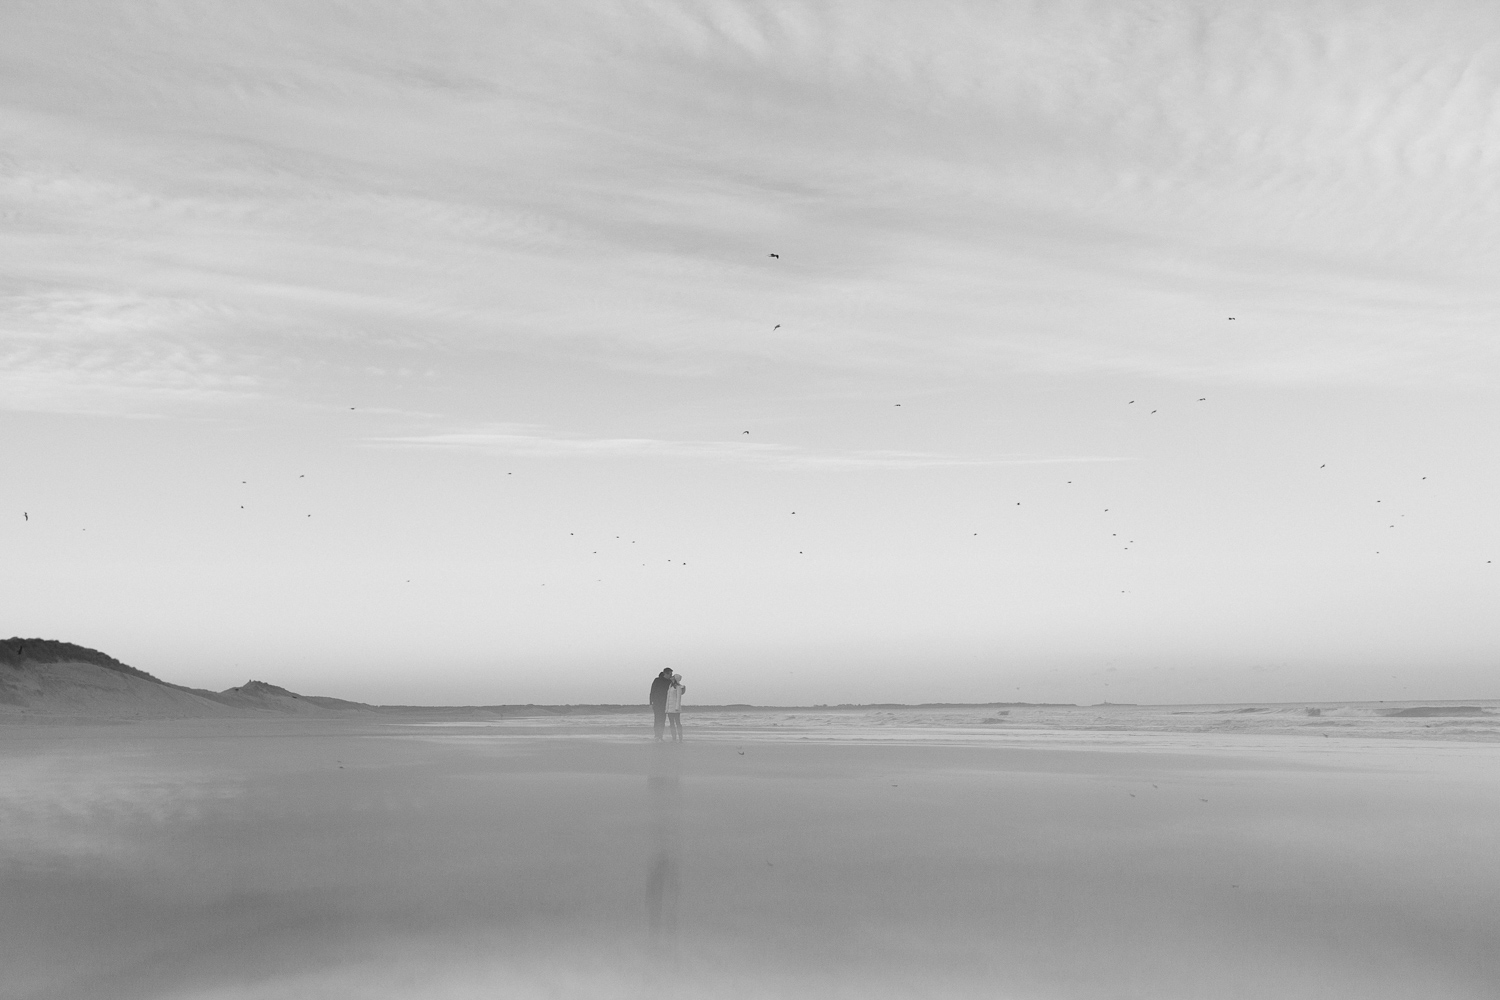 Northumberland Engagement Photographer // Nadia & Andrew // Walking on the Beach in Black and White